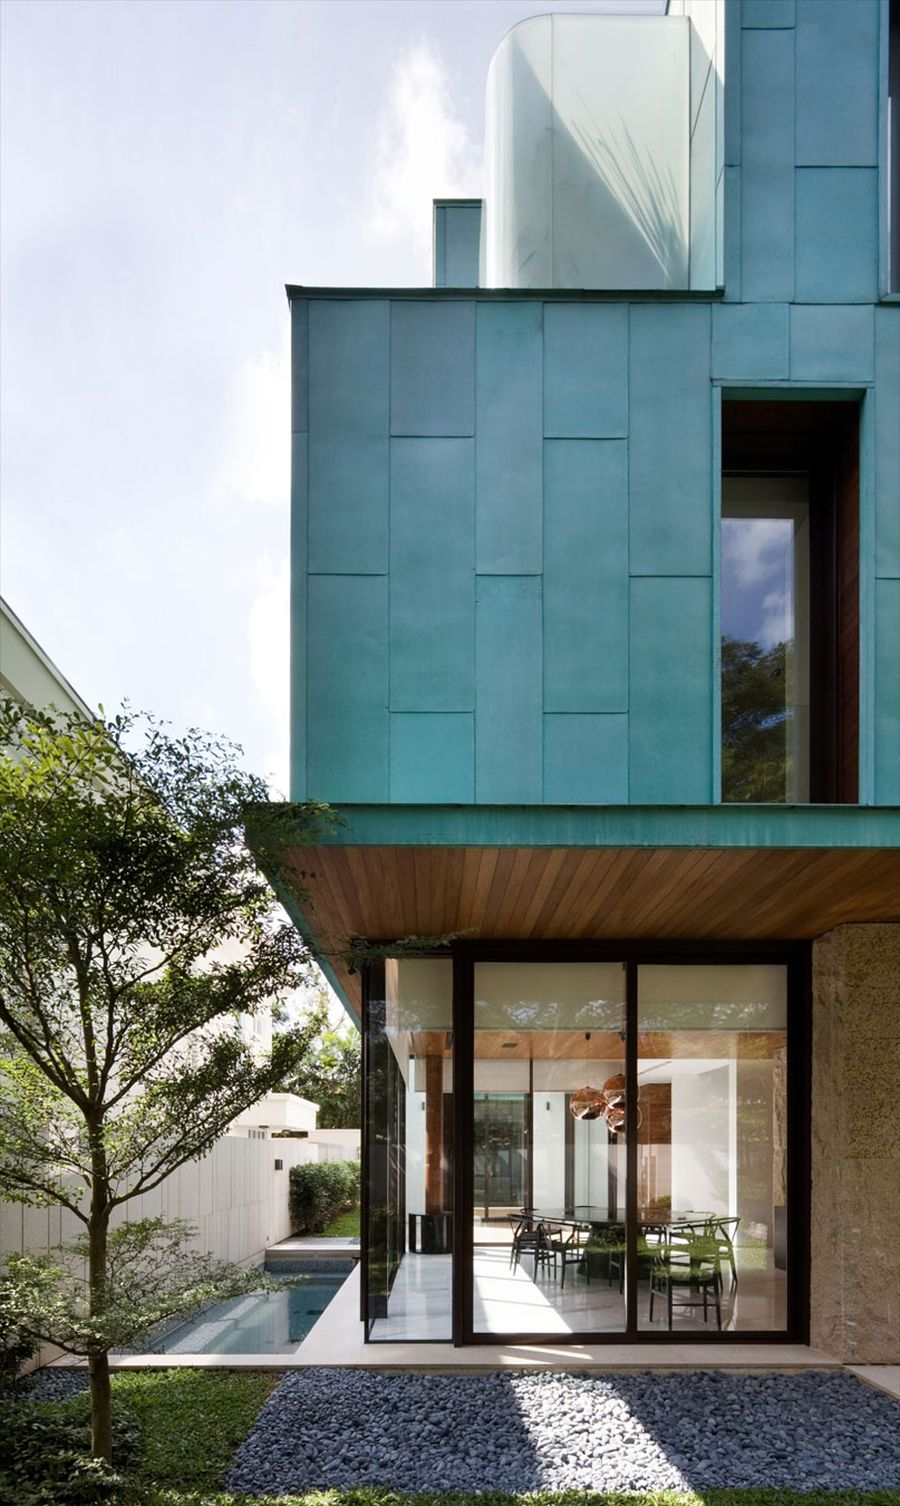 Metallic Exterior Meets Modern Interiors At Singapore S